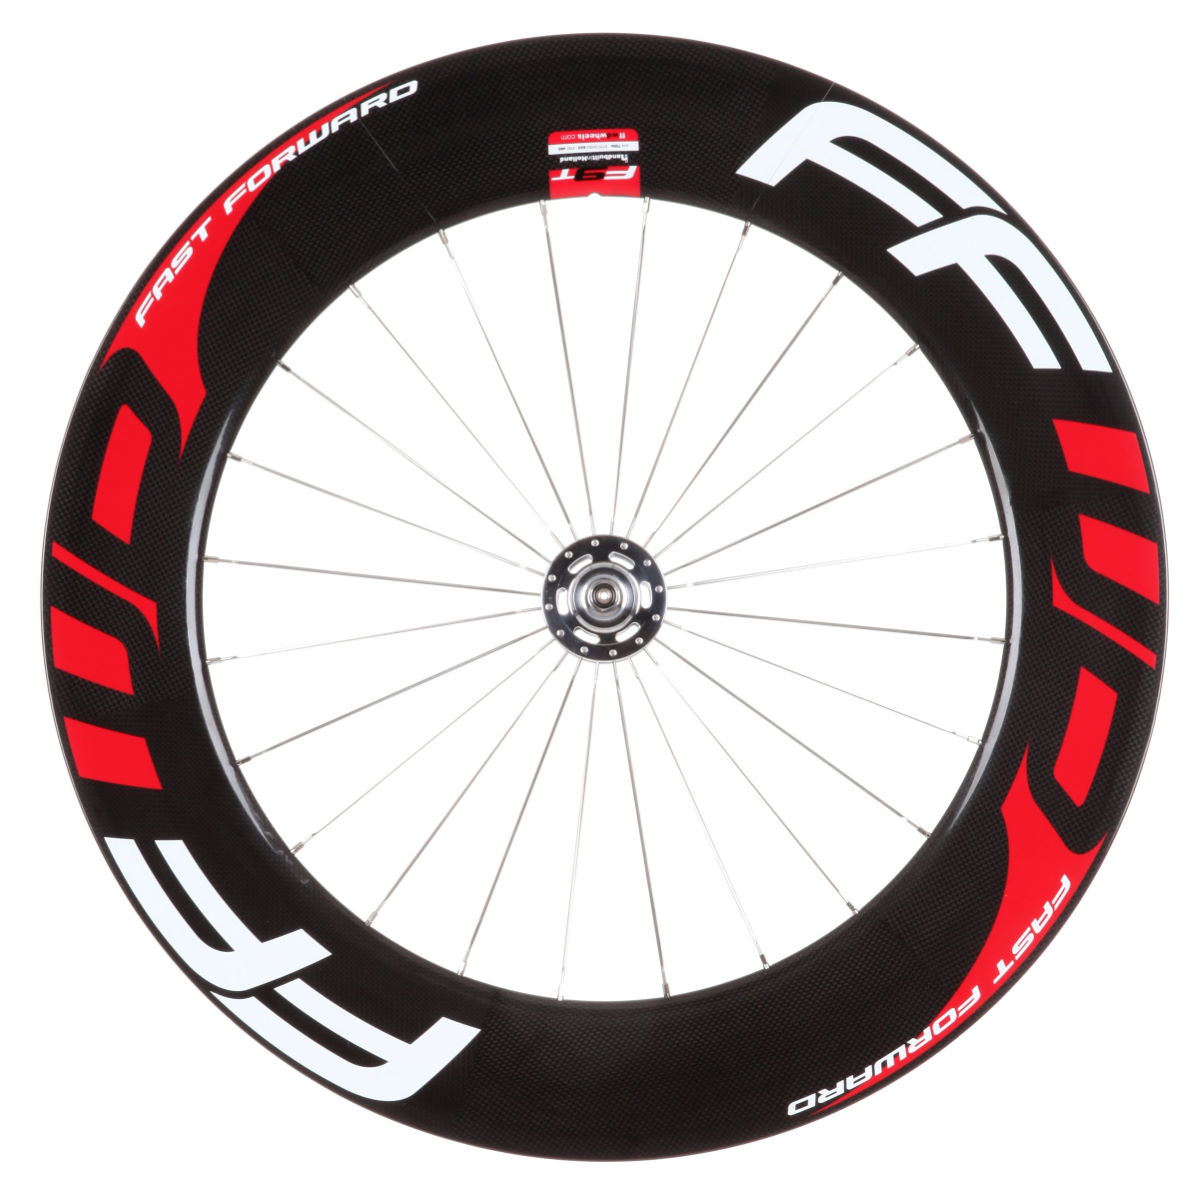 Roue avant de piste à boyau Fast Forward F9T (carbone) - 700c - Tubular Black/Red/White Roues performance